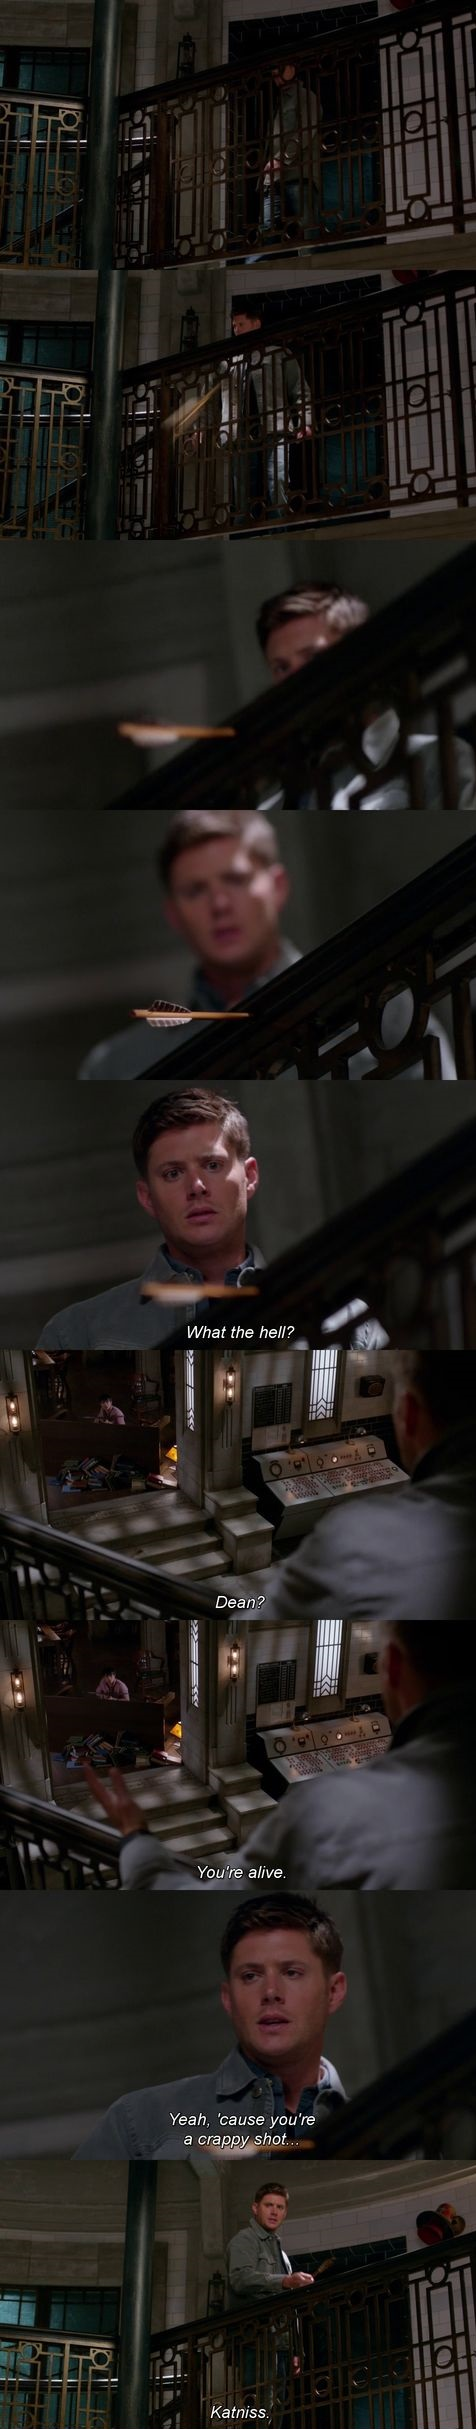 funny-picture-crappy-shot-supernatural